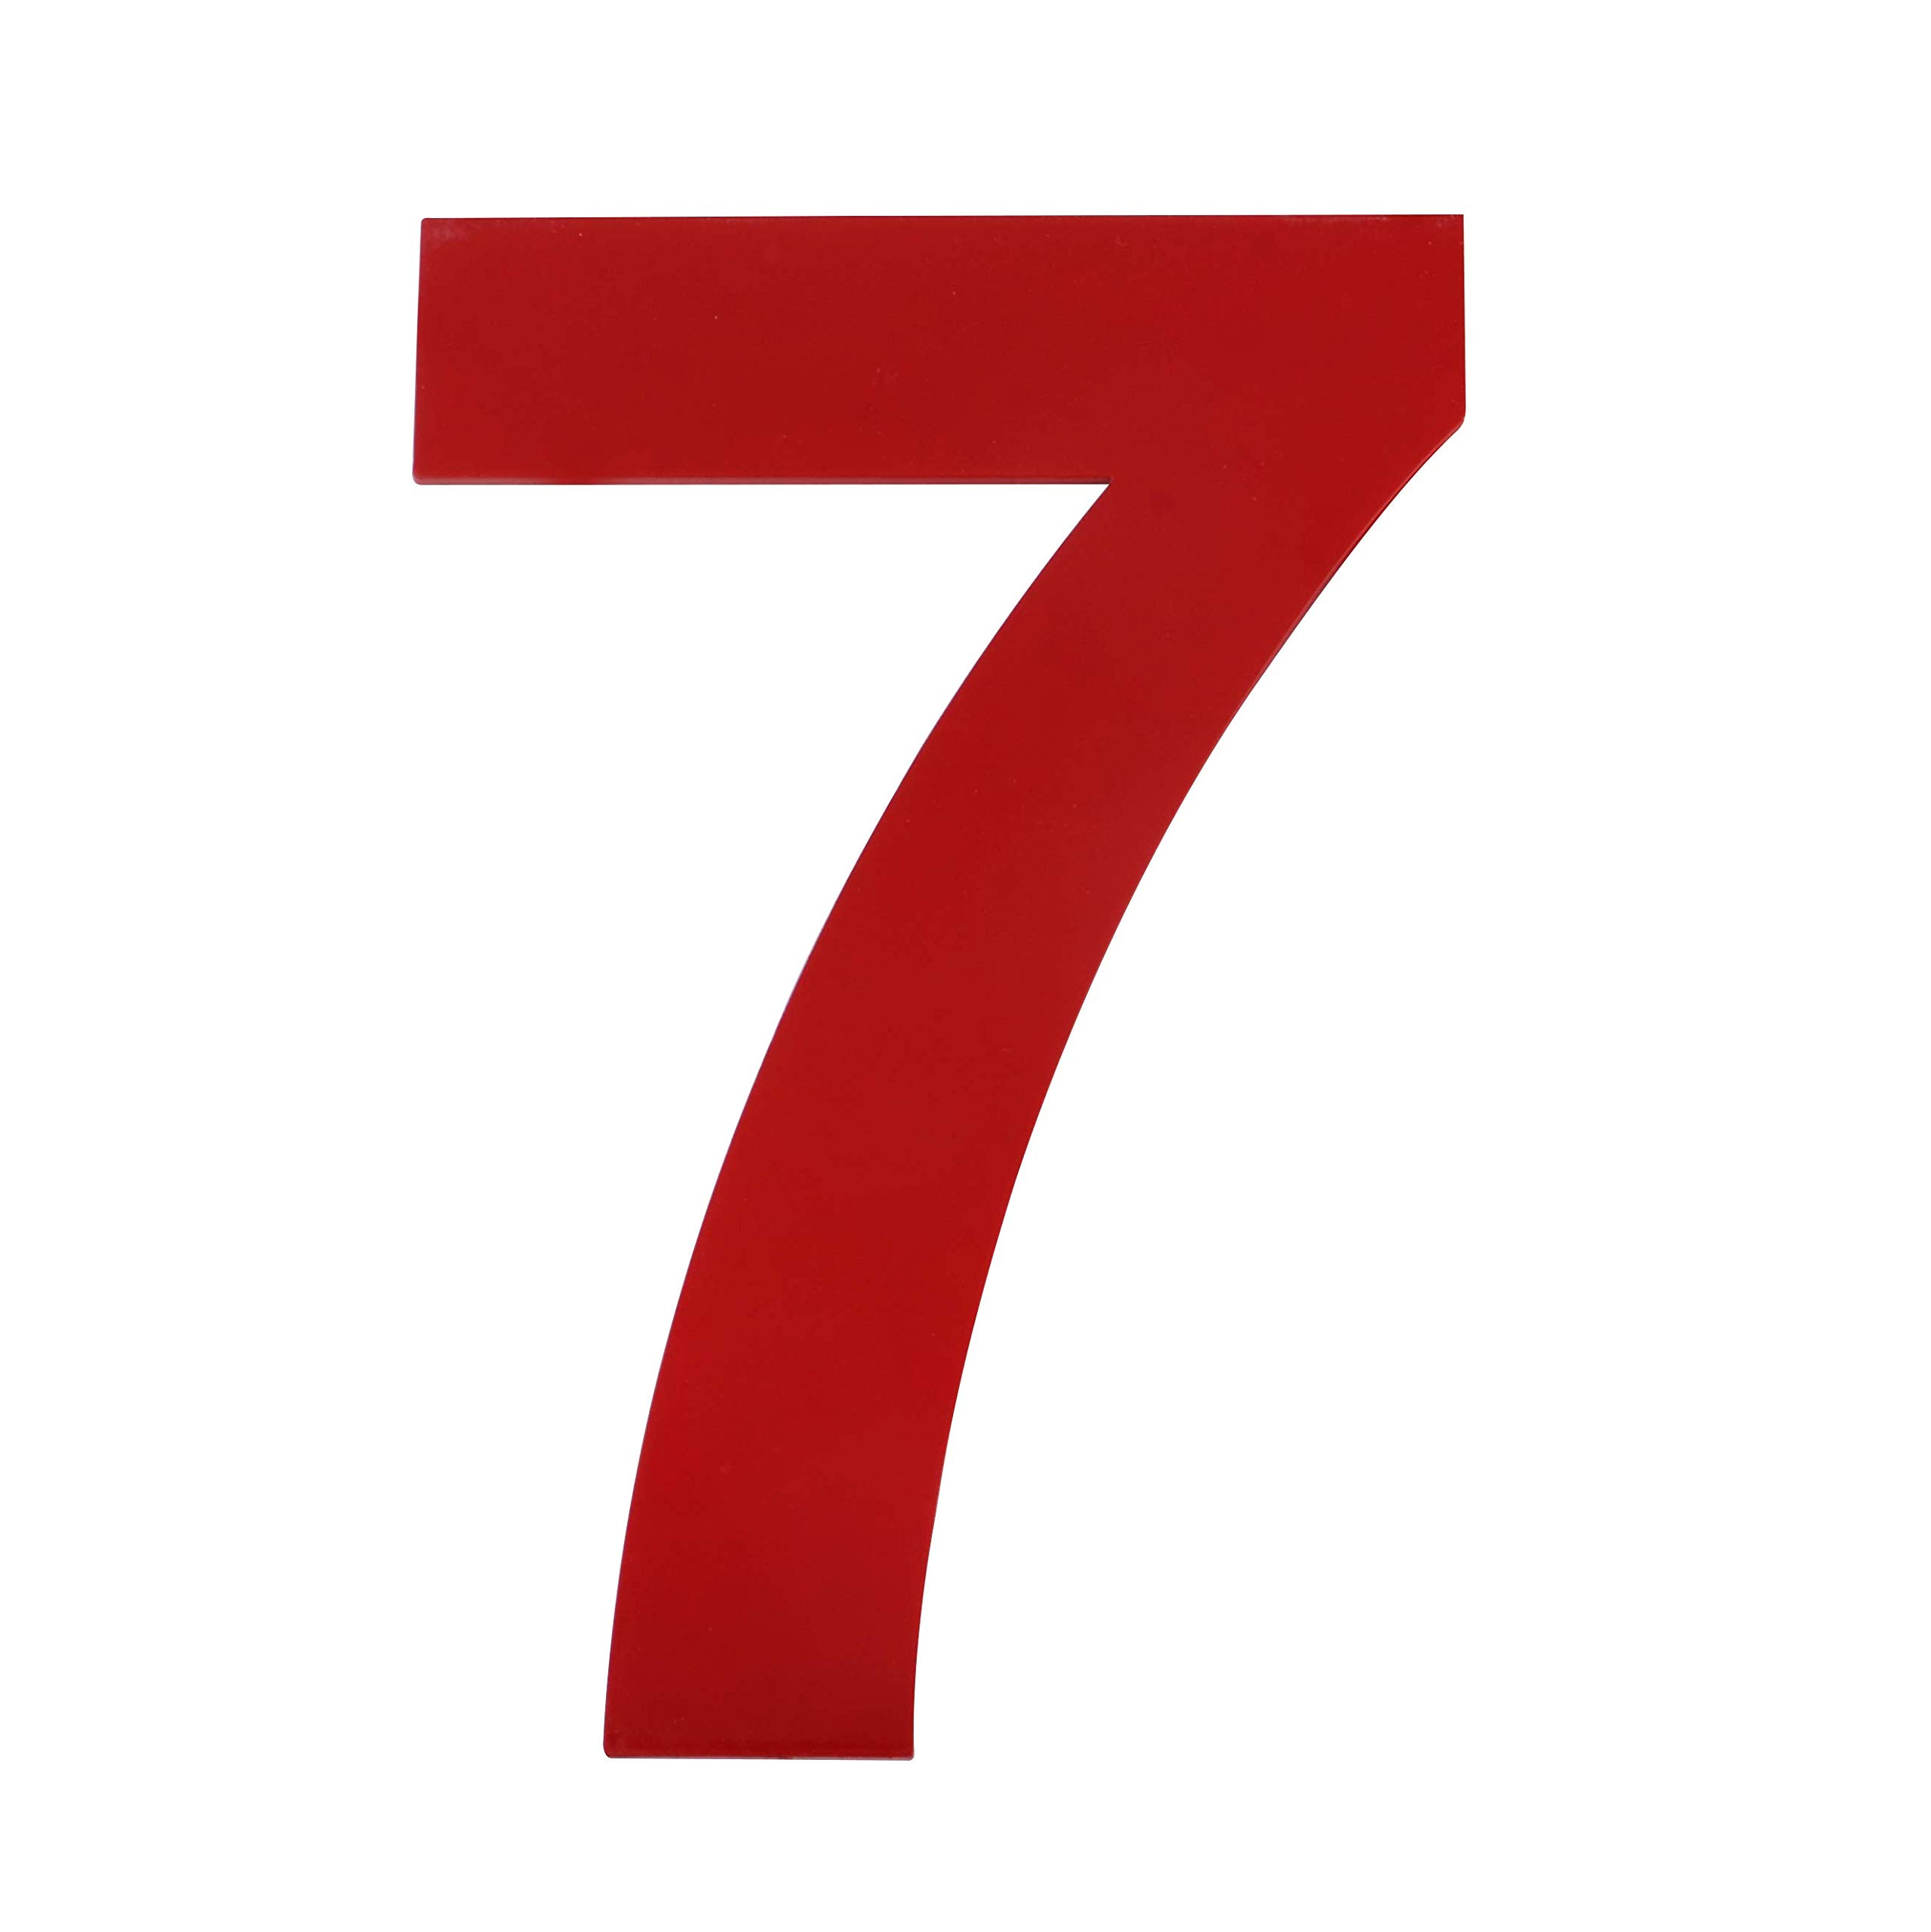 QT Modern House Number - 6 Inch RED - Stainless Steel (Number 7 Seven), Floating Appearance, Easy to Install and Made of Solid 304 Stainless Steel